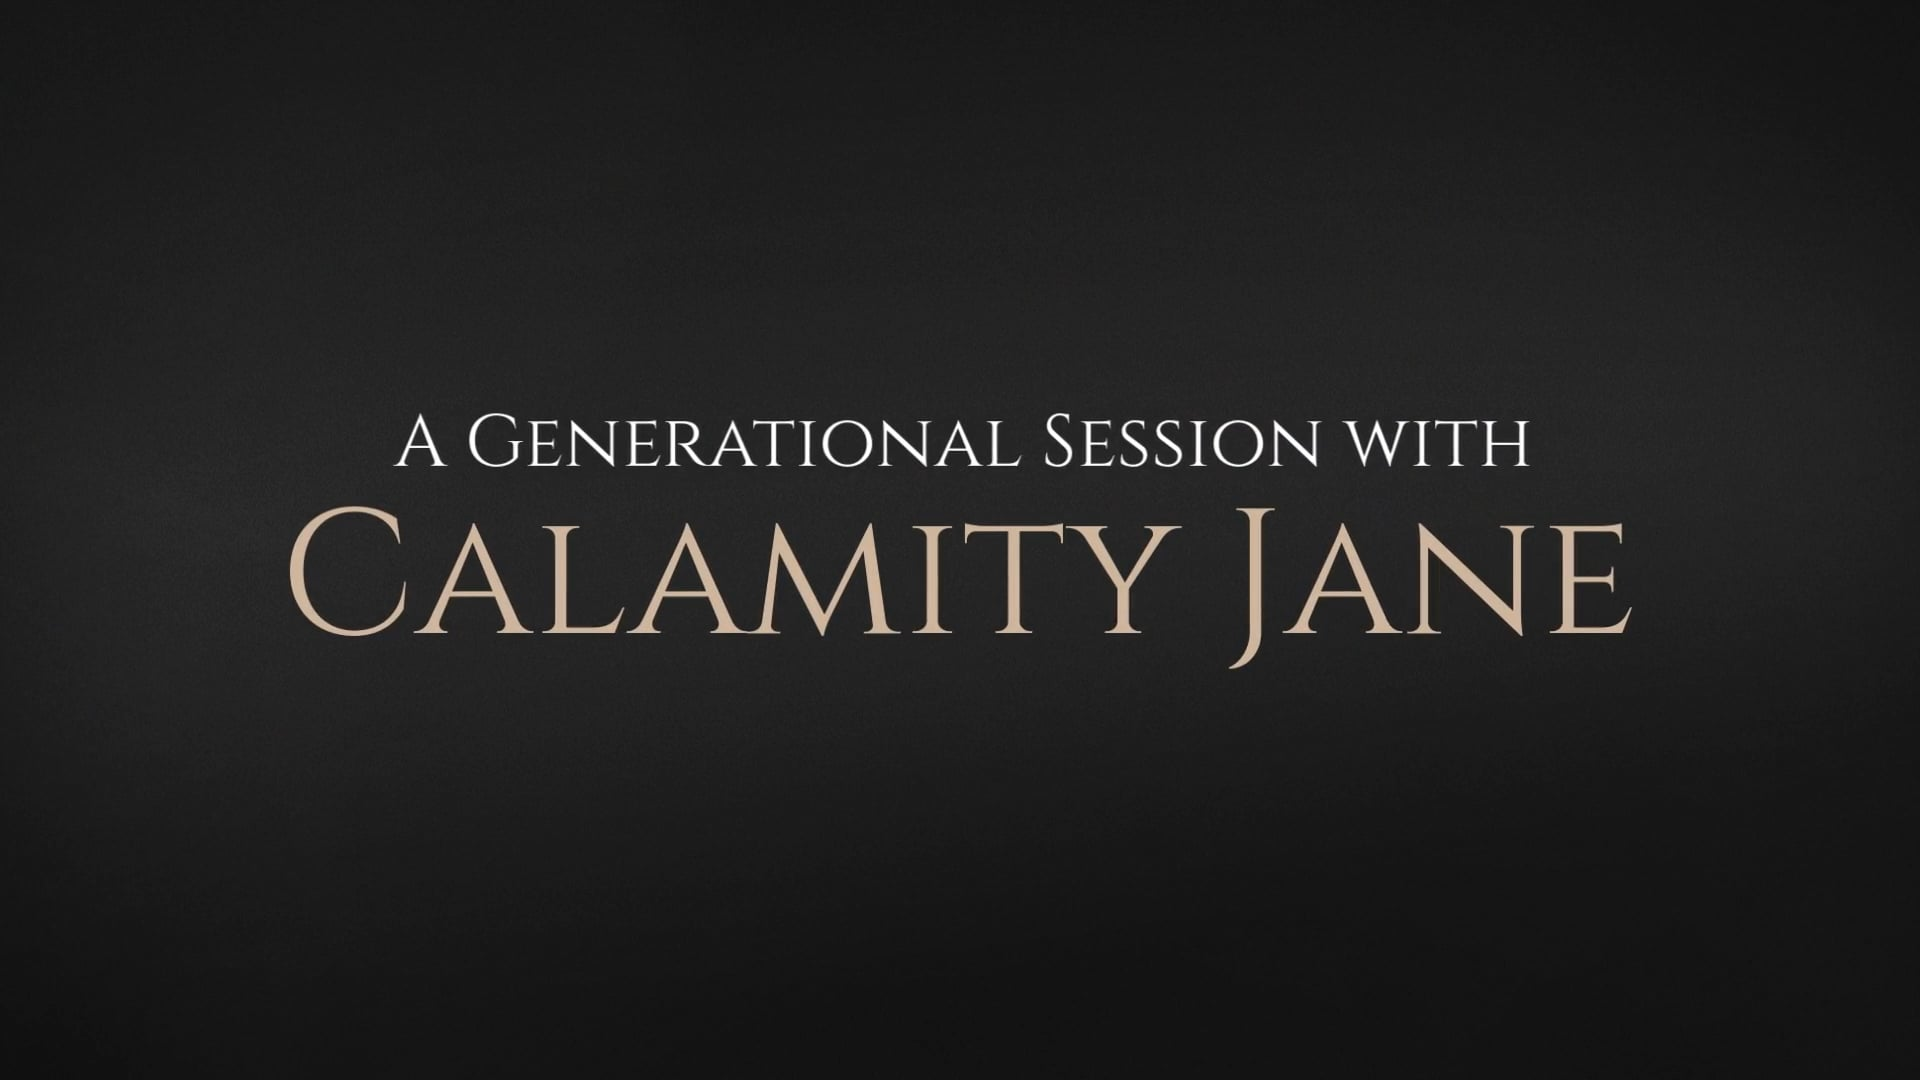 A Generations Session with Calamity Jane